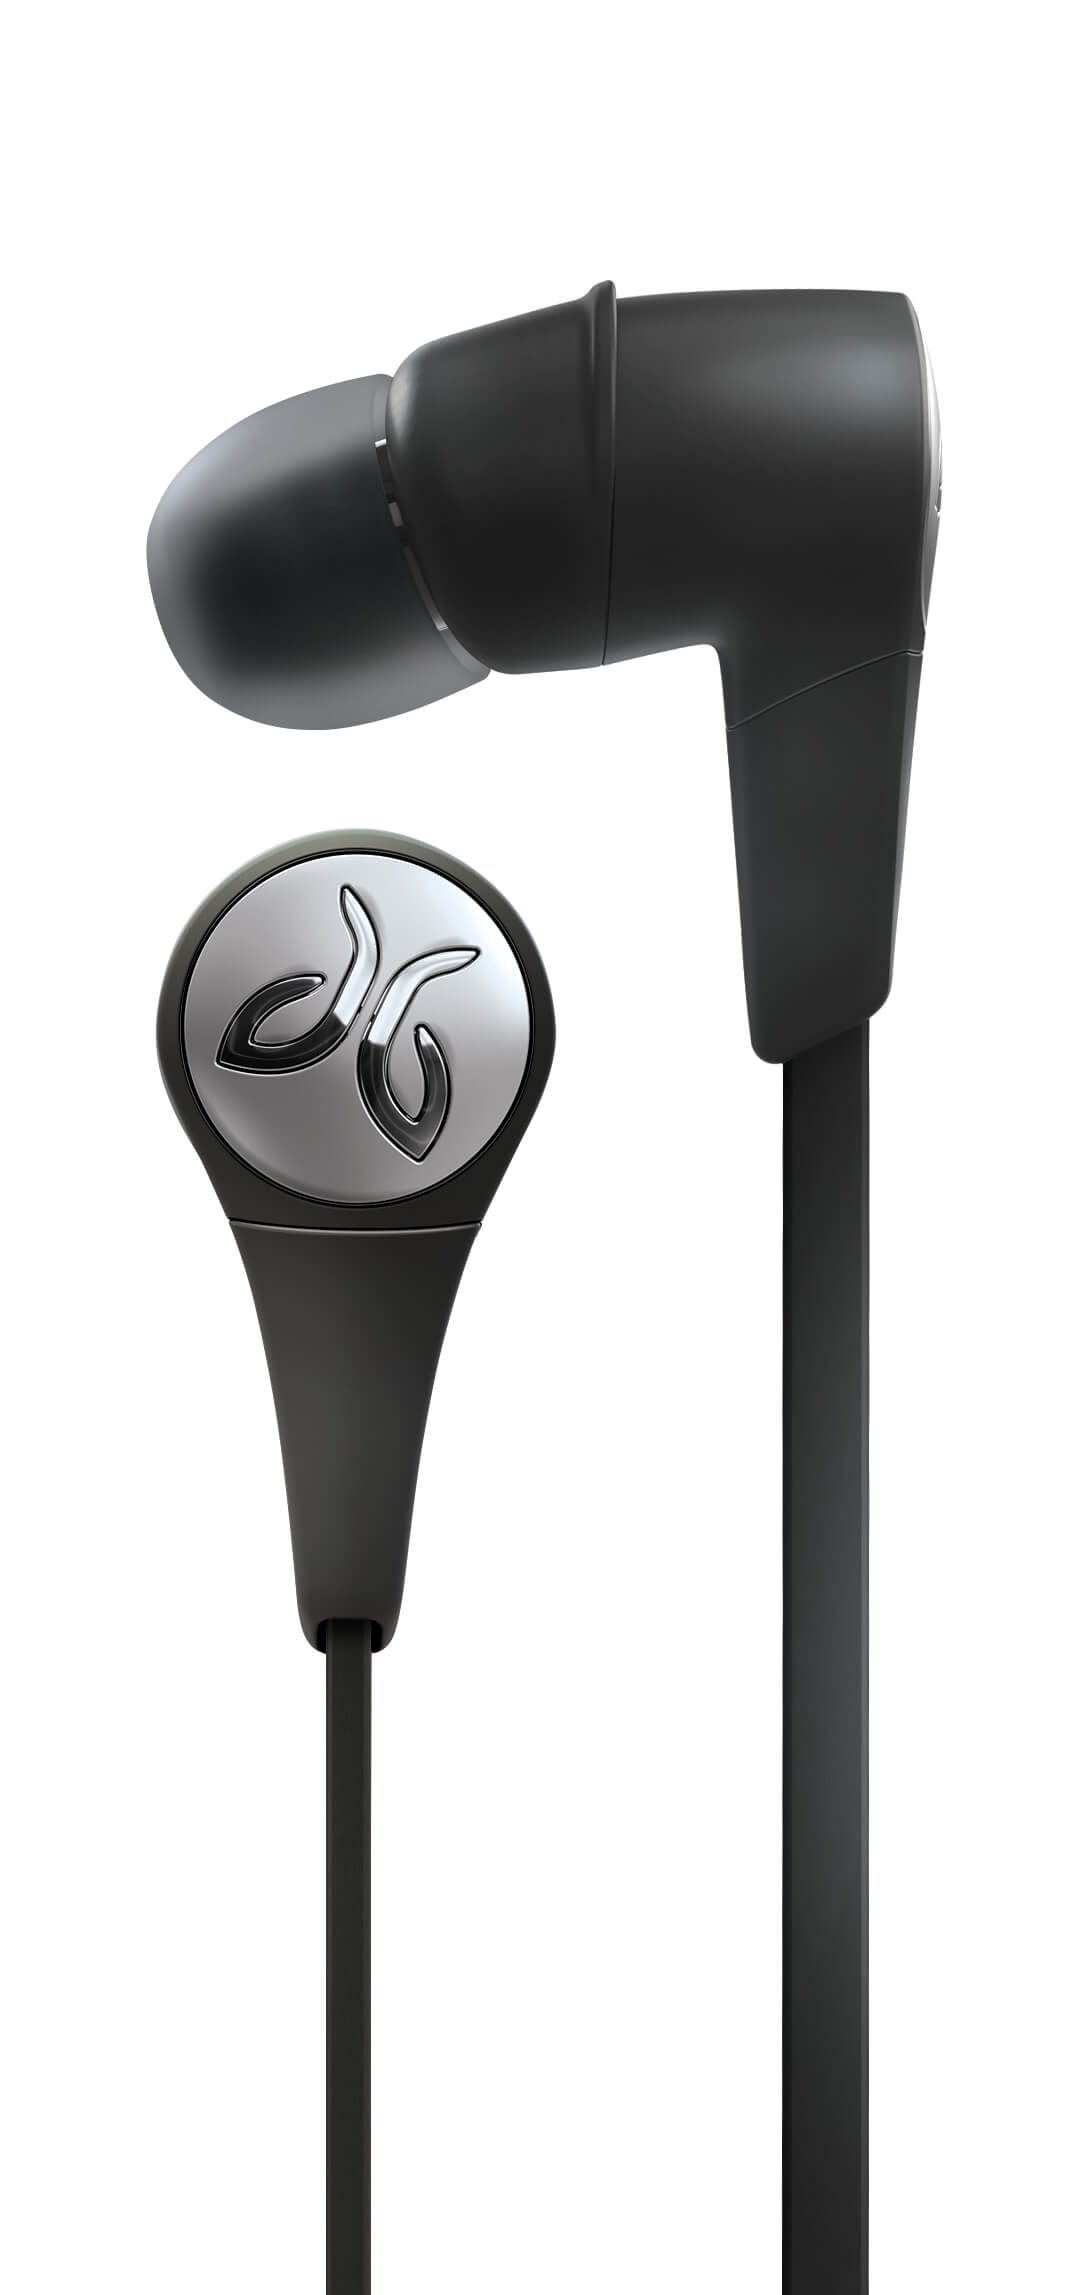 Jaybird X3 Sport Bluetooth Headphones Headset Blackout Earbuds Close Up